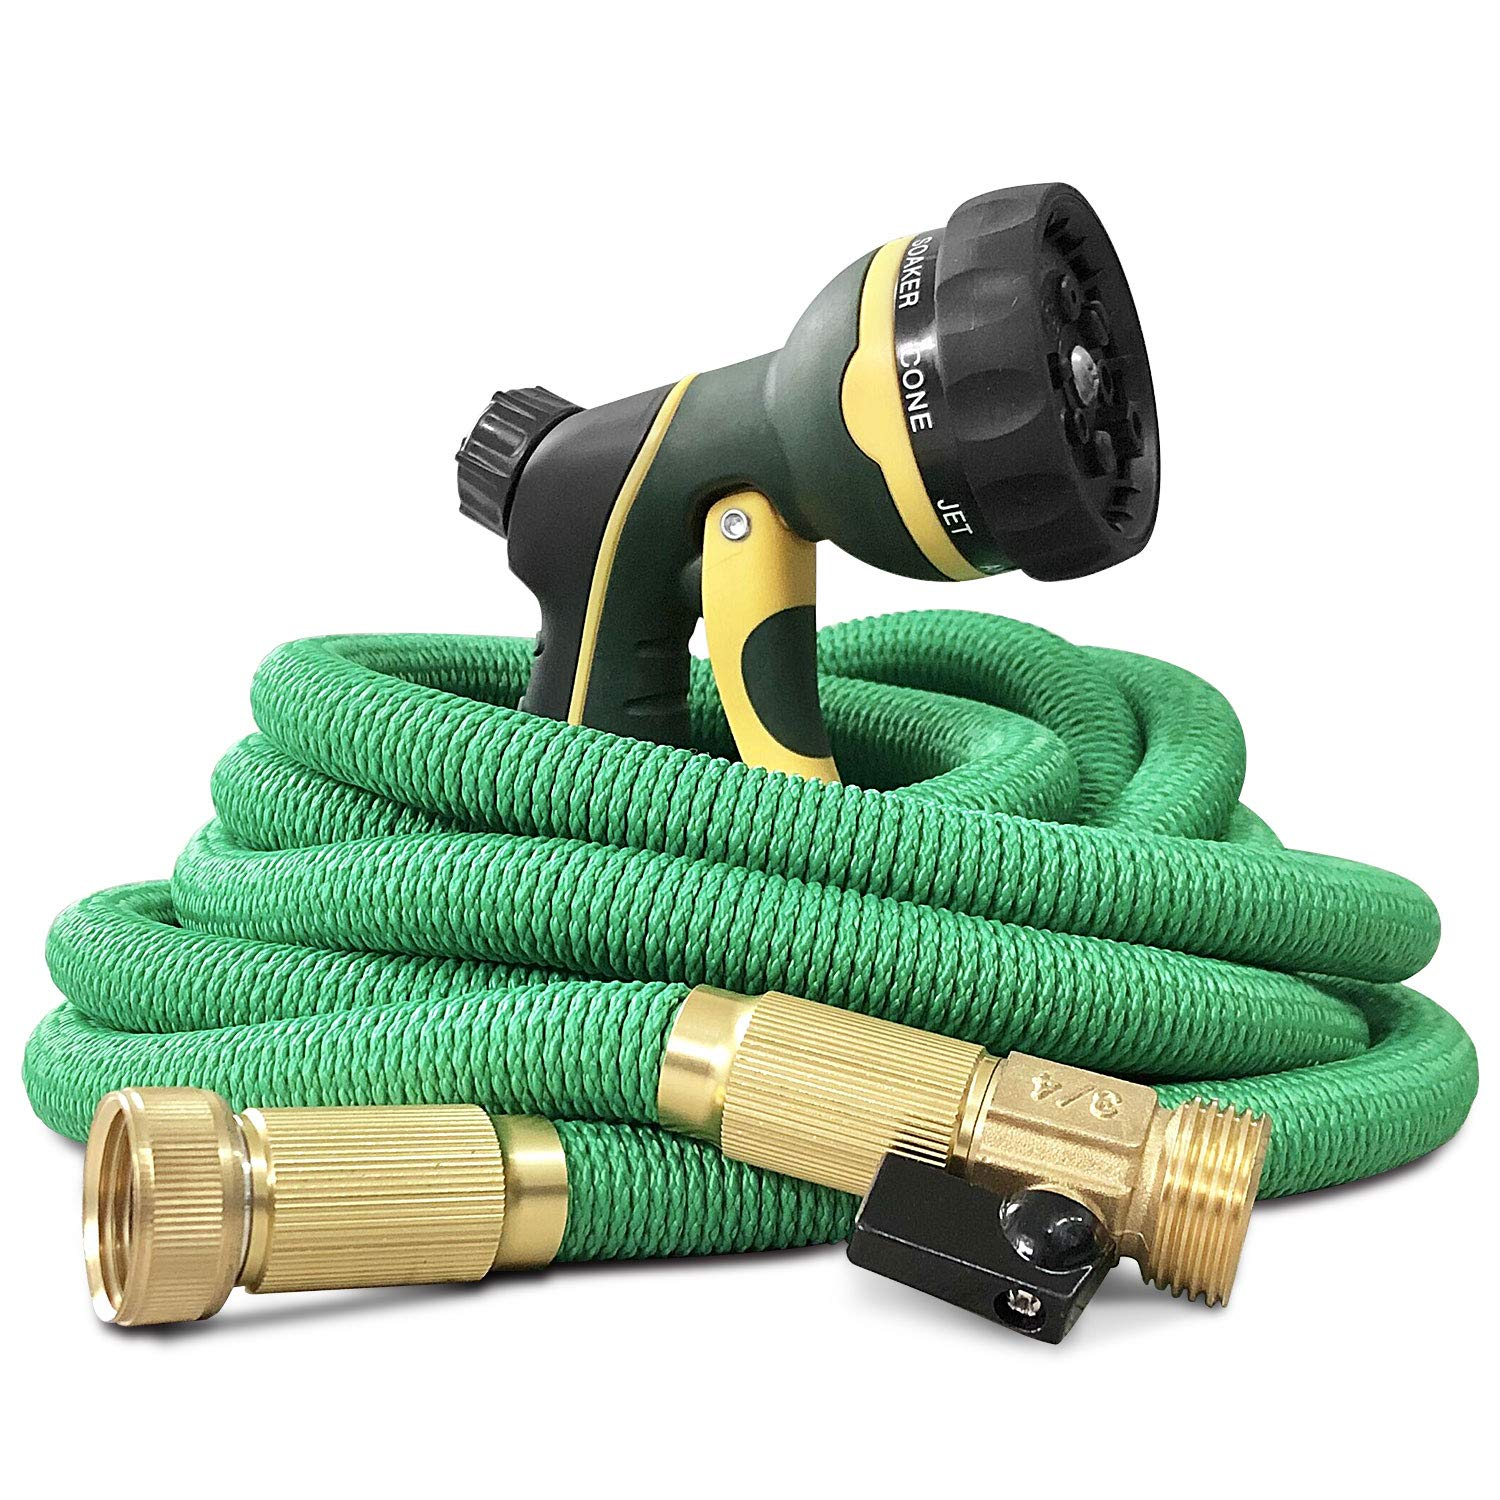 "NGreen Flexible Expandable Garden Hose - Easy Storage Kink Free Collapsible Water Hose 25/50/75/100 FT Strongest Triple Latex Core with 3/4"" Solid Brass Fittings Free and Spray Nozzle(25ft) product image"